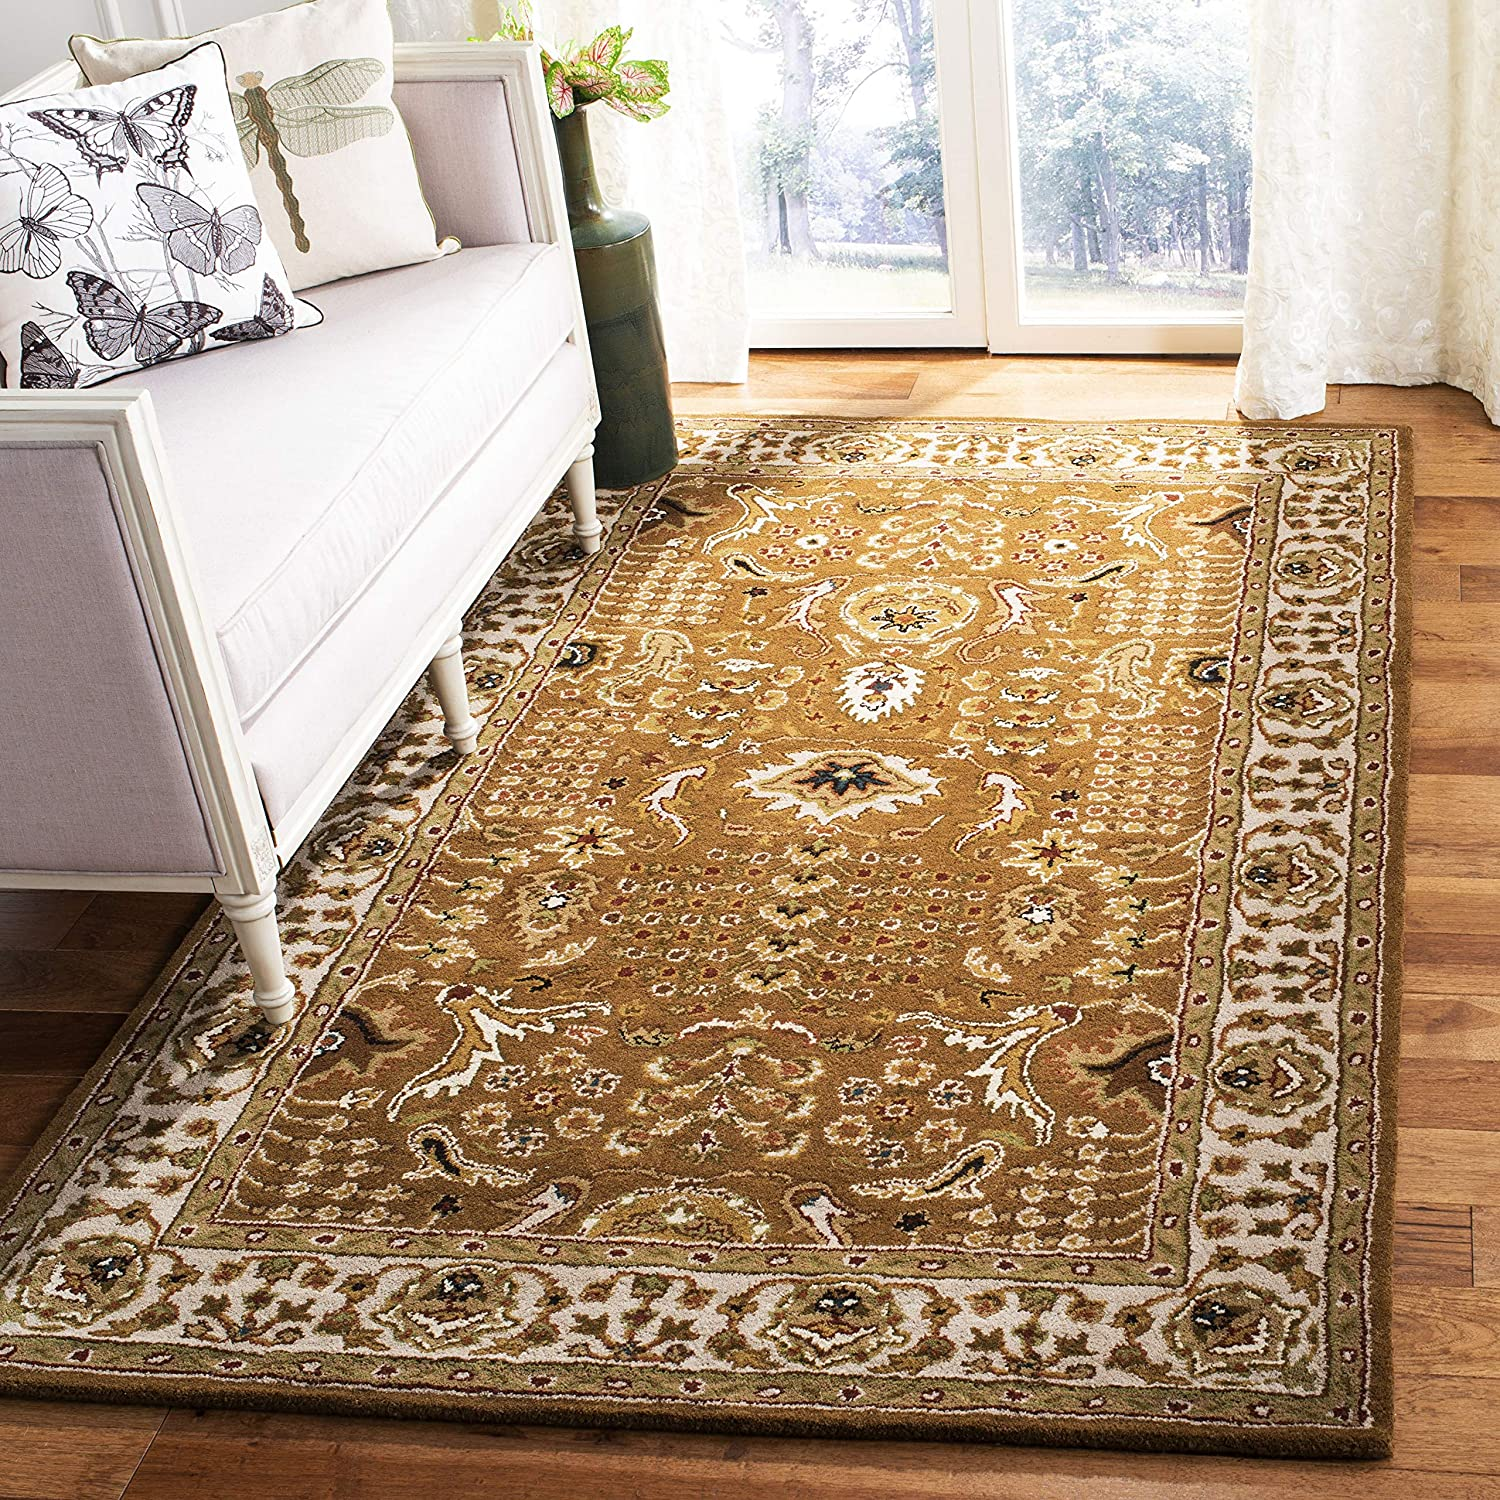 Safavieh Classic Collection Cl764a Handmade Traditional Oriental Premium Wool Area Rug 8 3 X 11 Gold Beige Furniture Decor